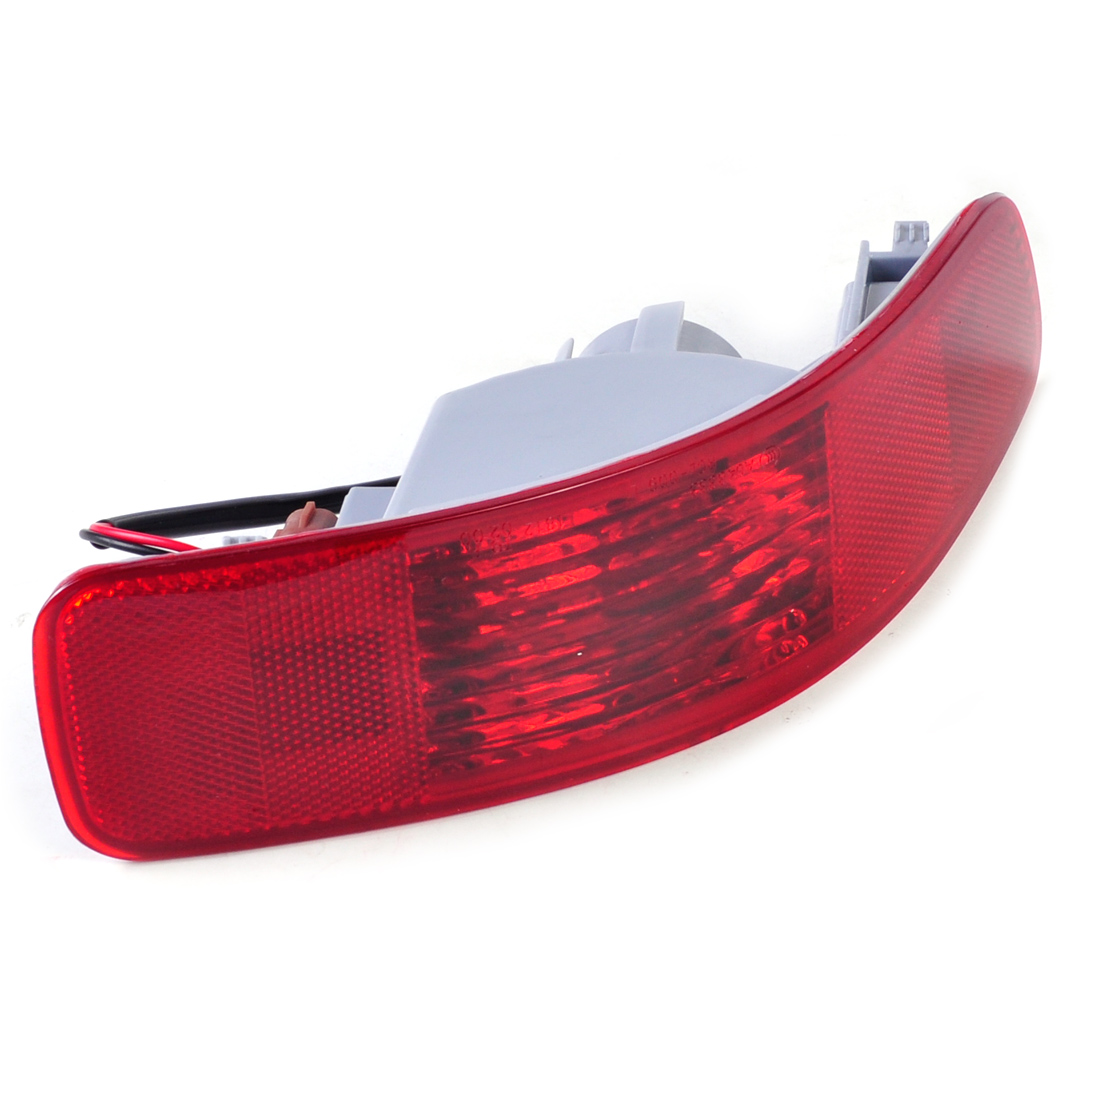 beler Rear Left Side Fog Light Bumper Lamp Reflector SL693-LH Fit for Mitsubishi Outlander 2007 2008 2009 2010 2011 2012 2013 car modification lamp fog lamps safety light h11 12v 55w suitable for mitsubishi triton l200 2009 2010 2011 2012 on